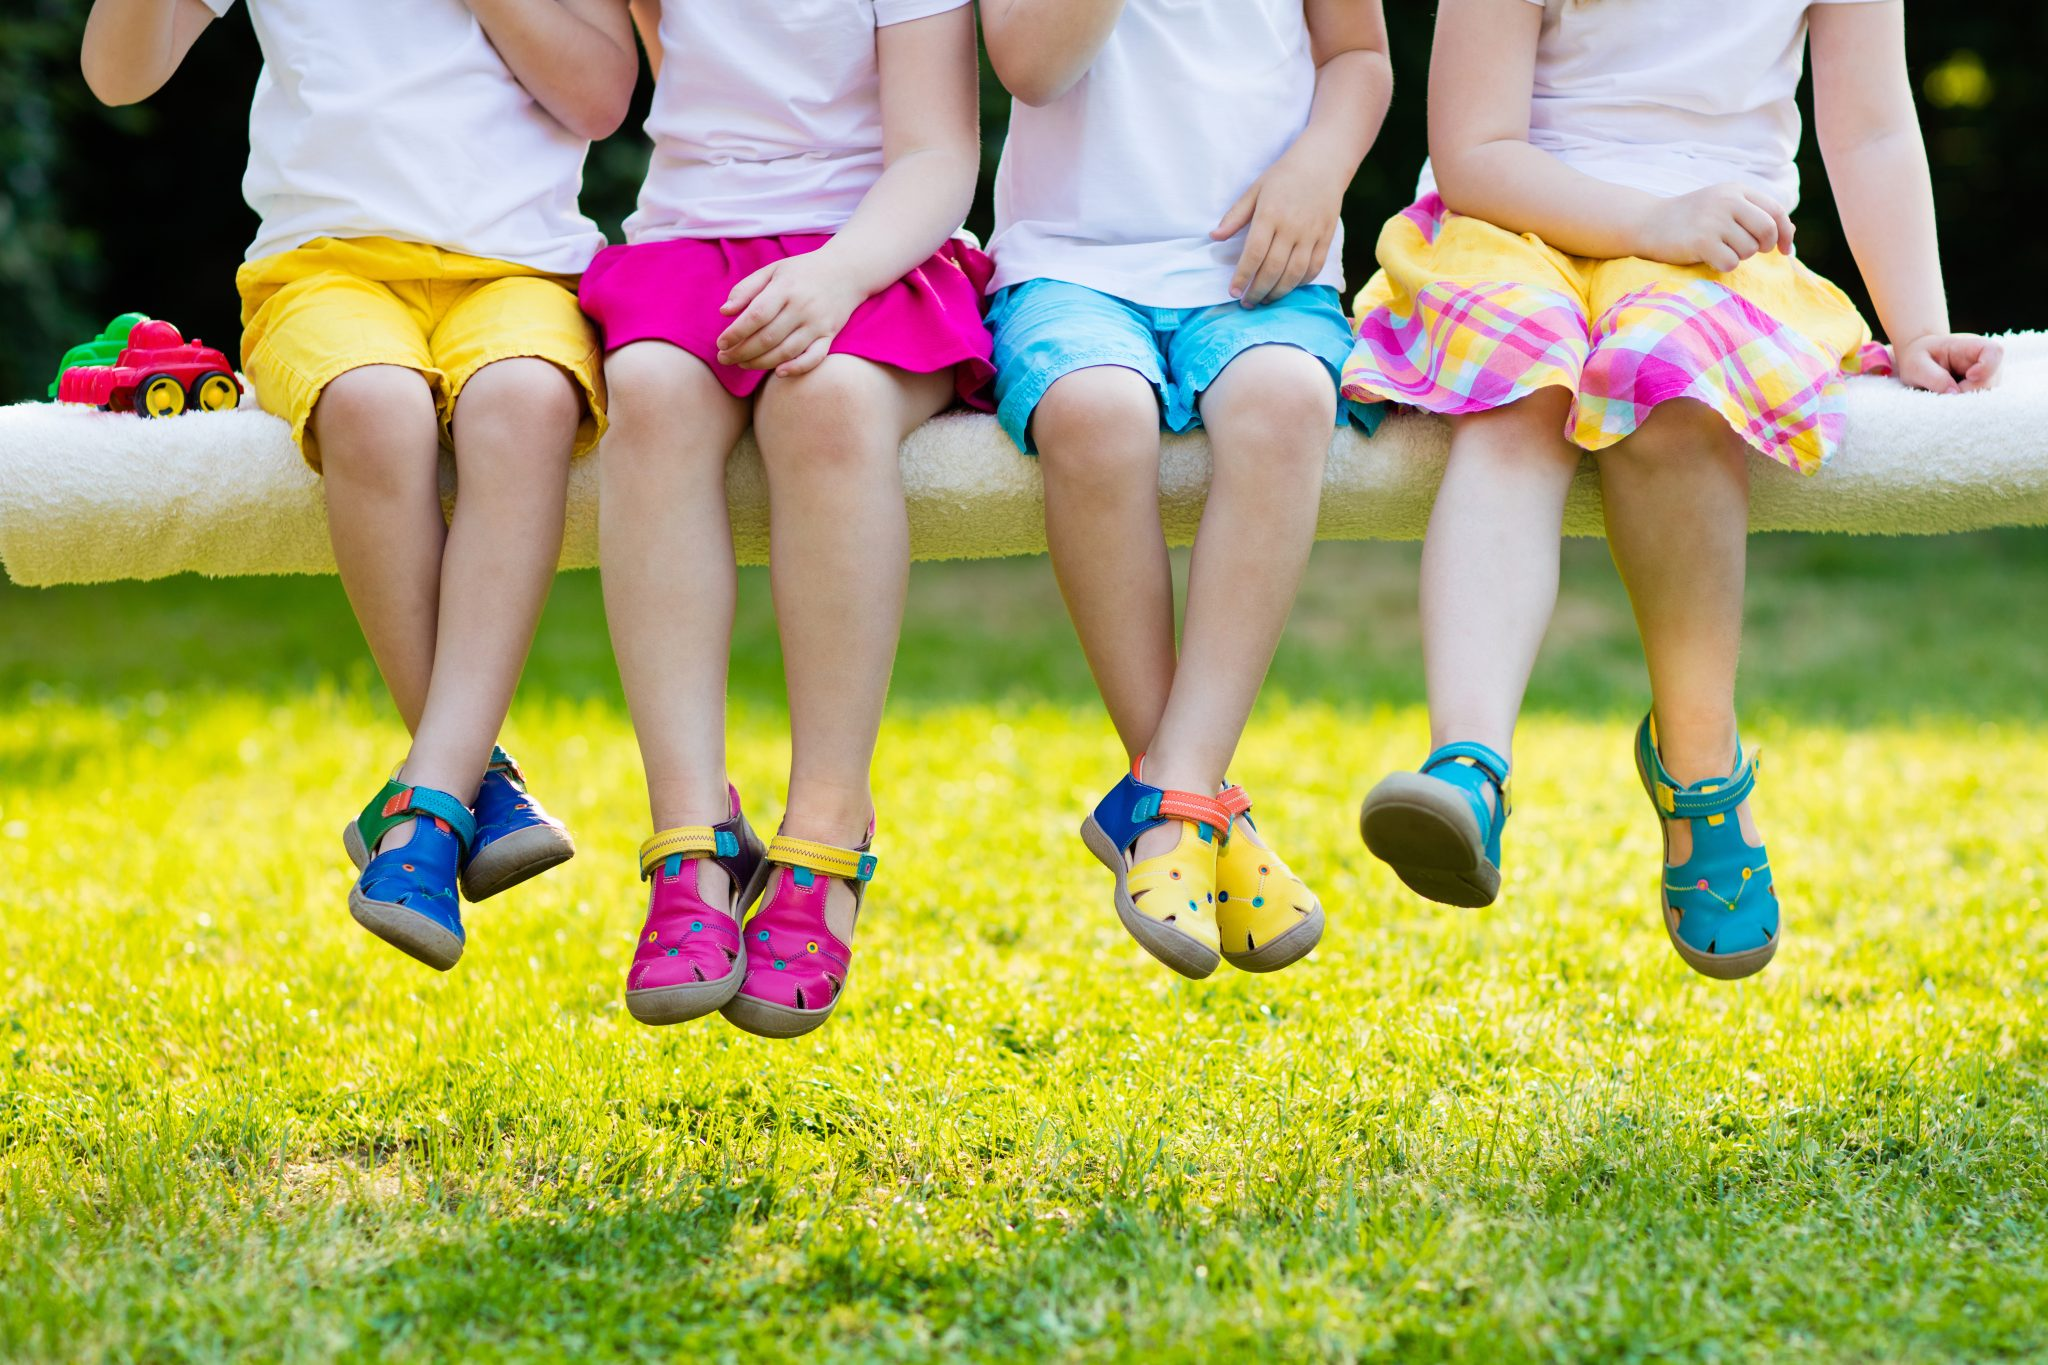 Group of preschool kids wearing colorful shoes.